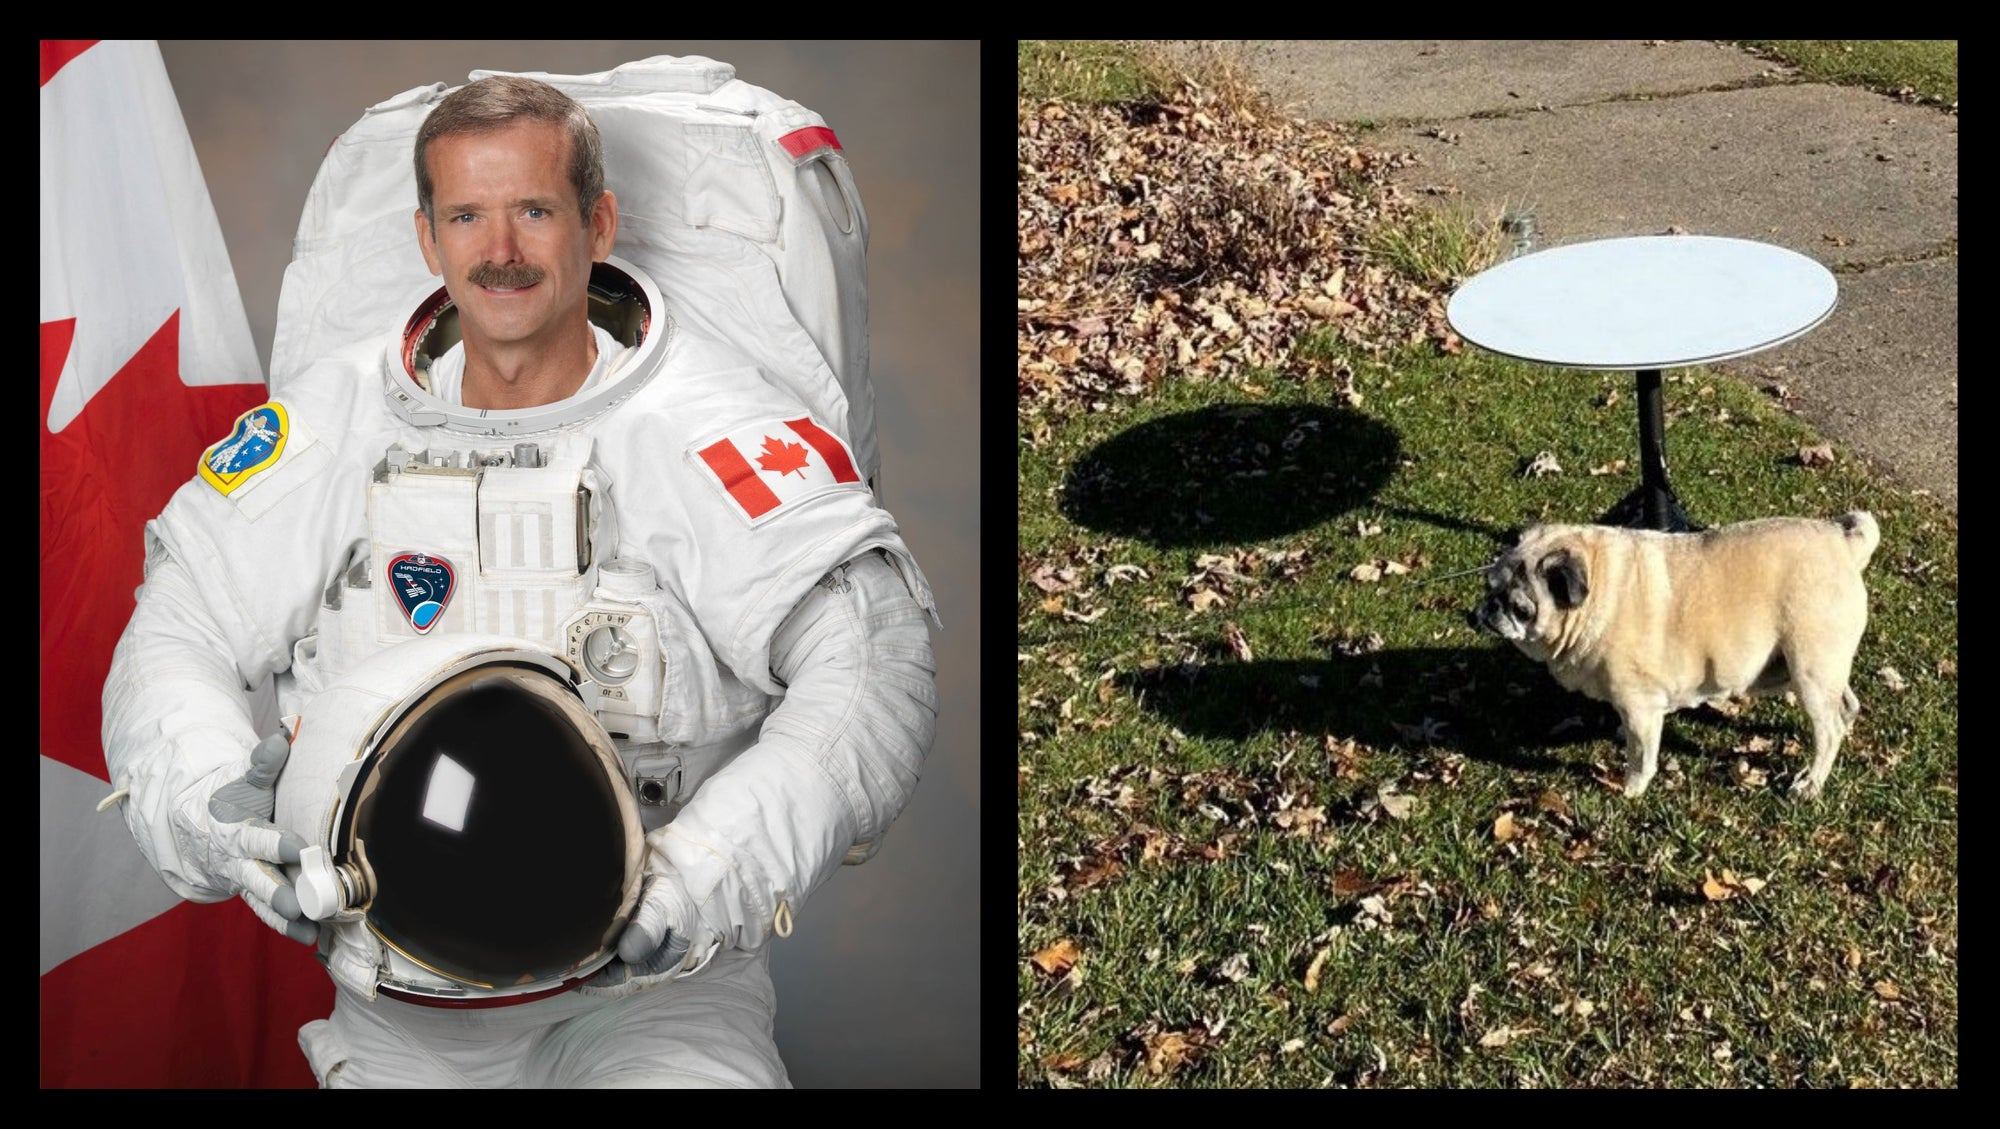 Former Canadian Astronaut is a SpaceX Starlink Internet Beta Tester